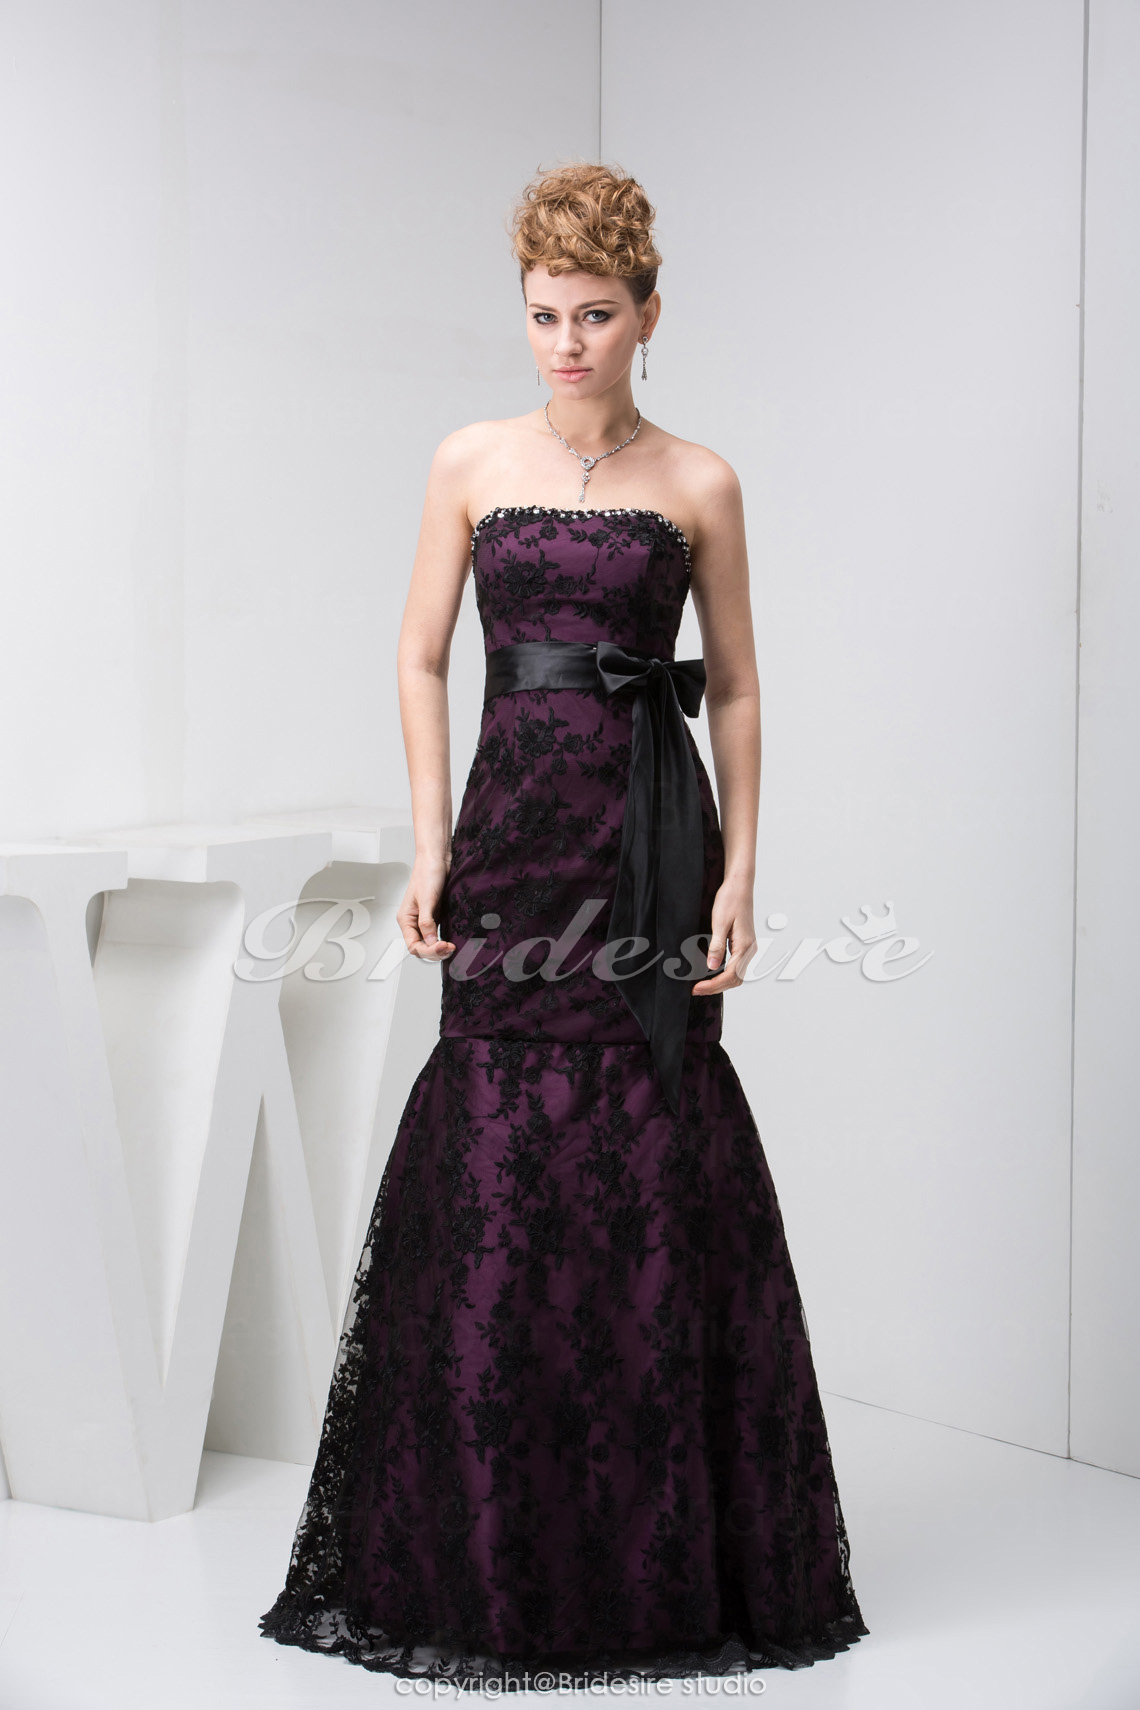 Trumpet/Mermaid Strapless Floor-length Sleeveless Satin Lace Dress